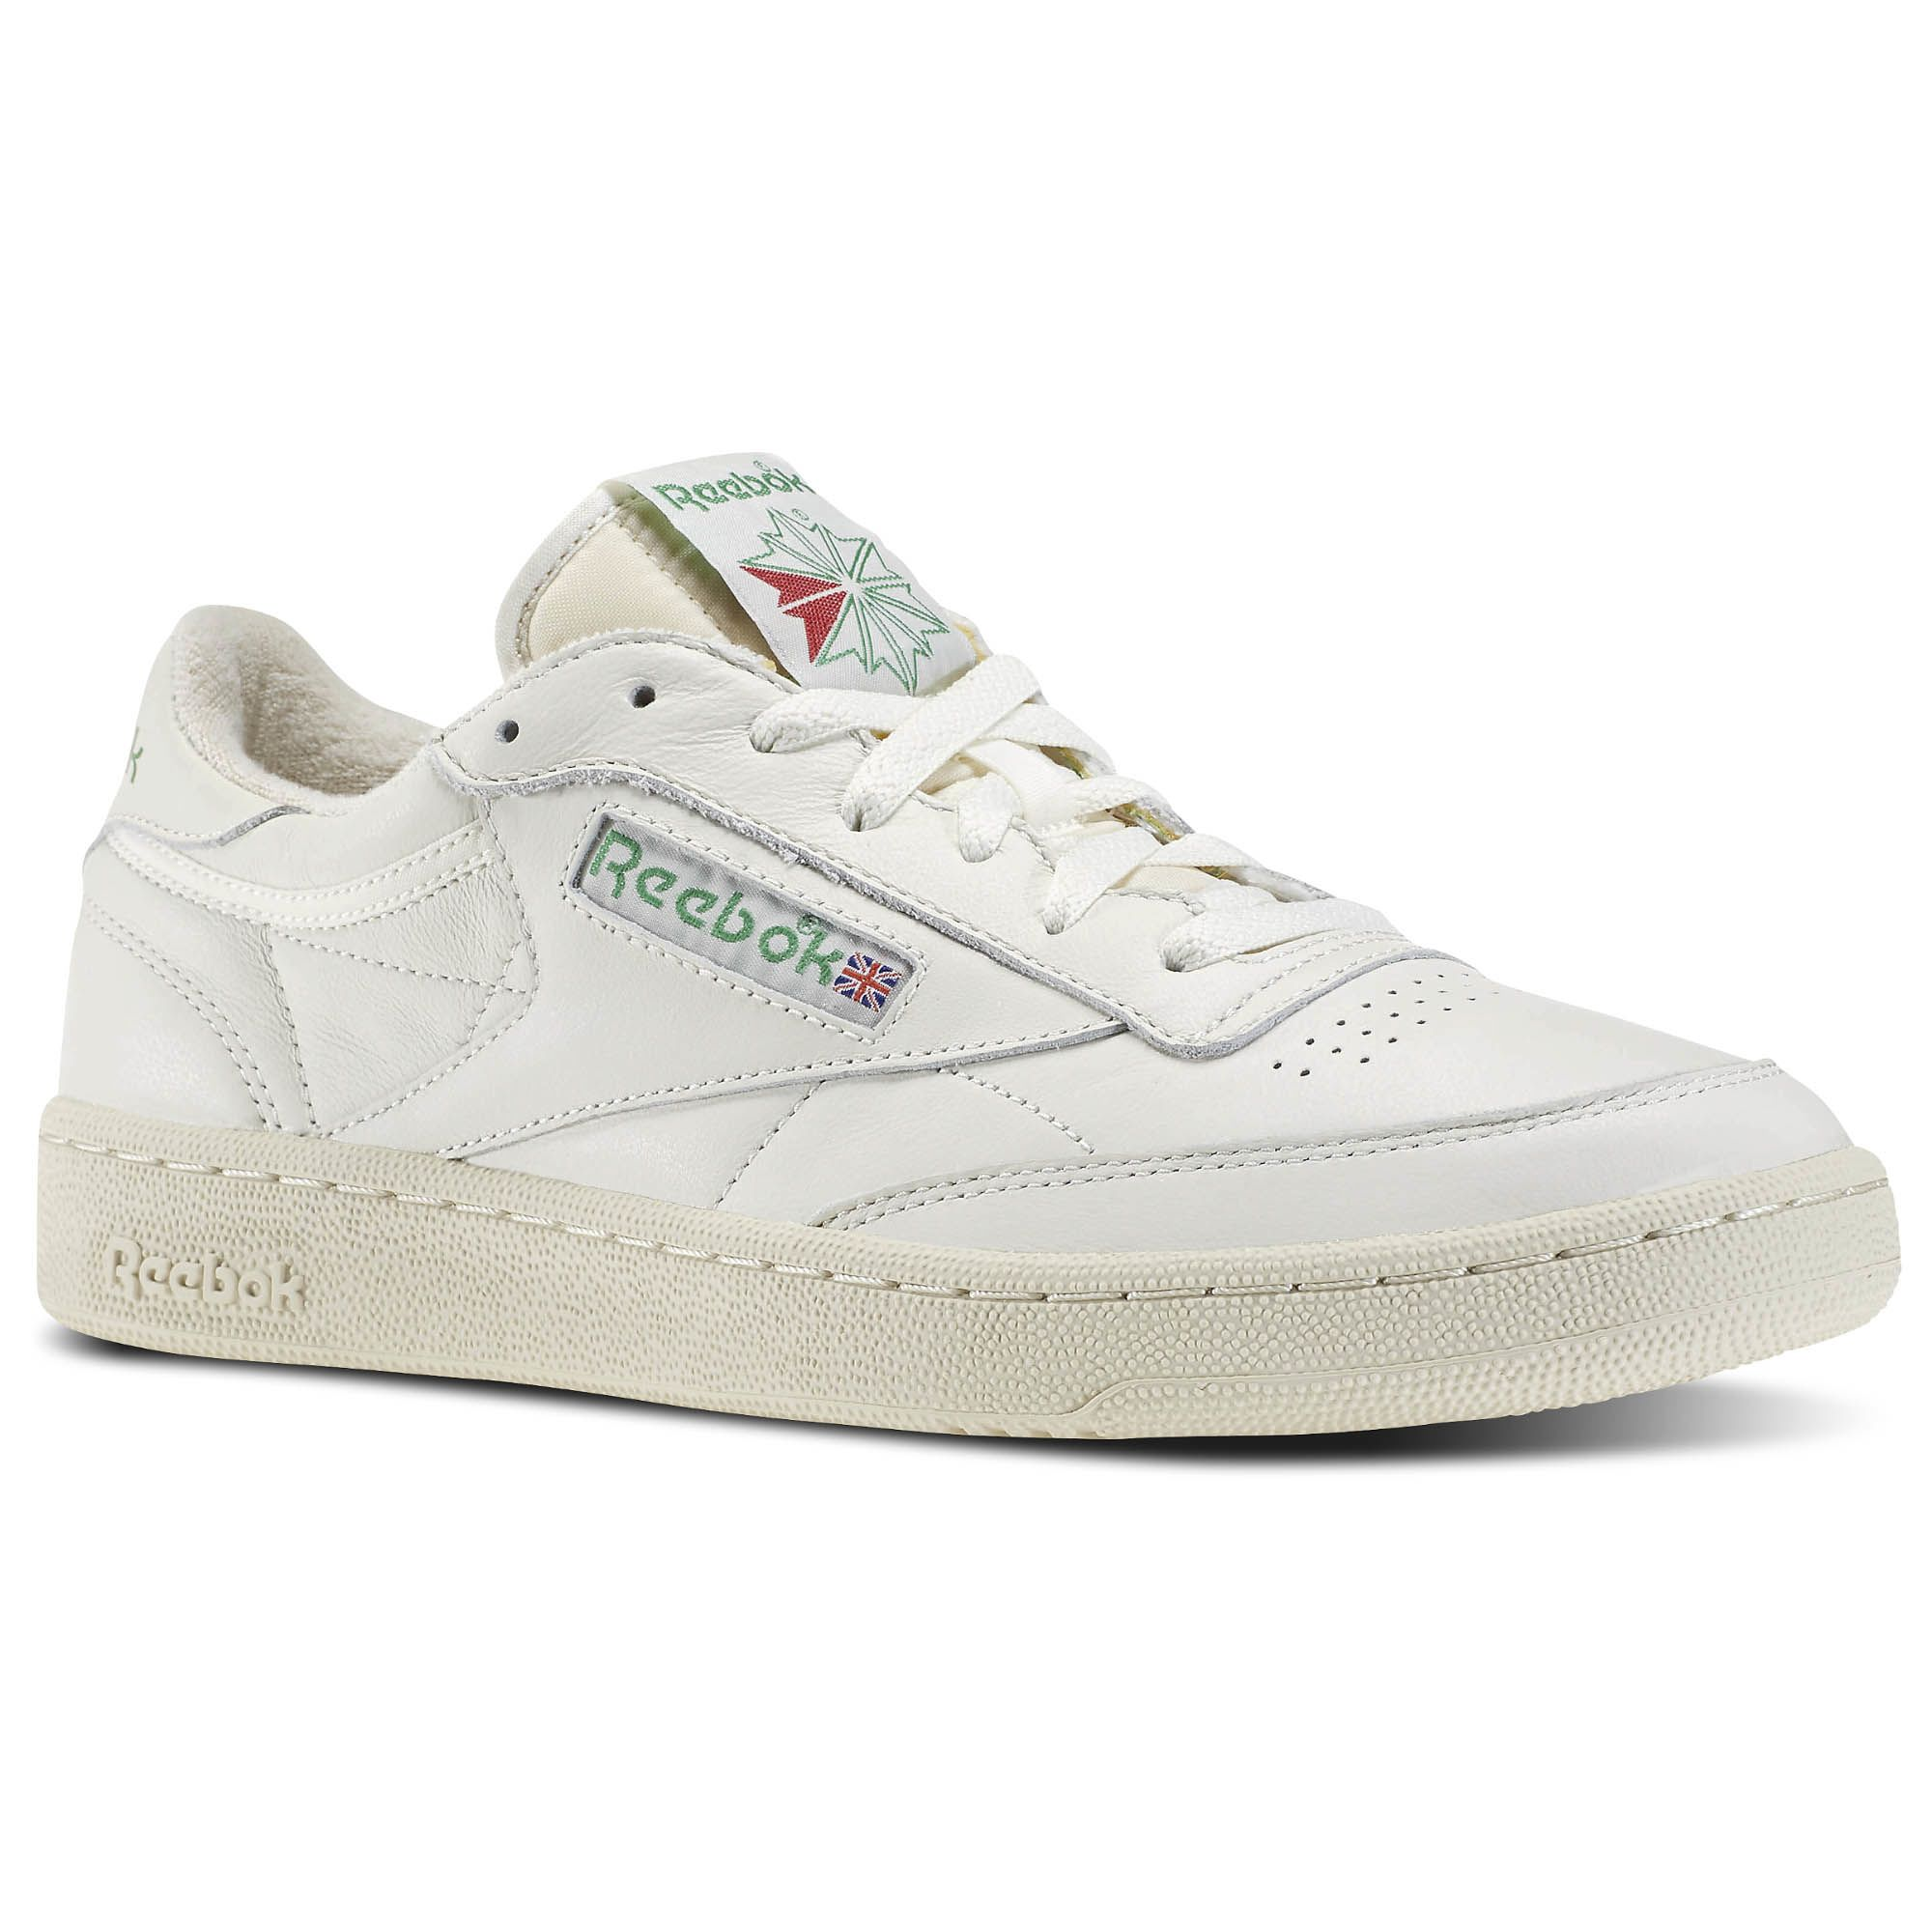 35cd78253e8 reebok-club-c-vintage-1 - SneakersBR